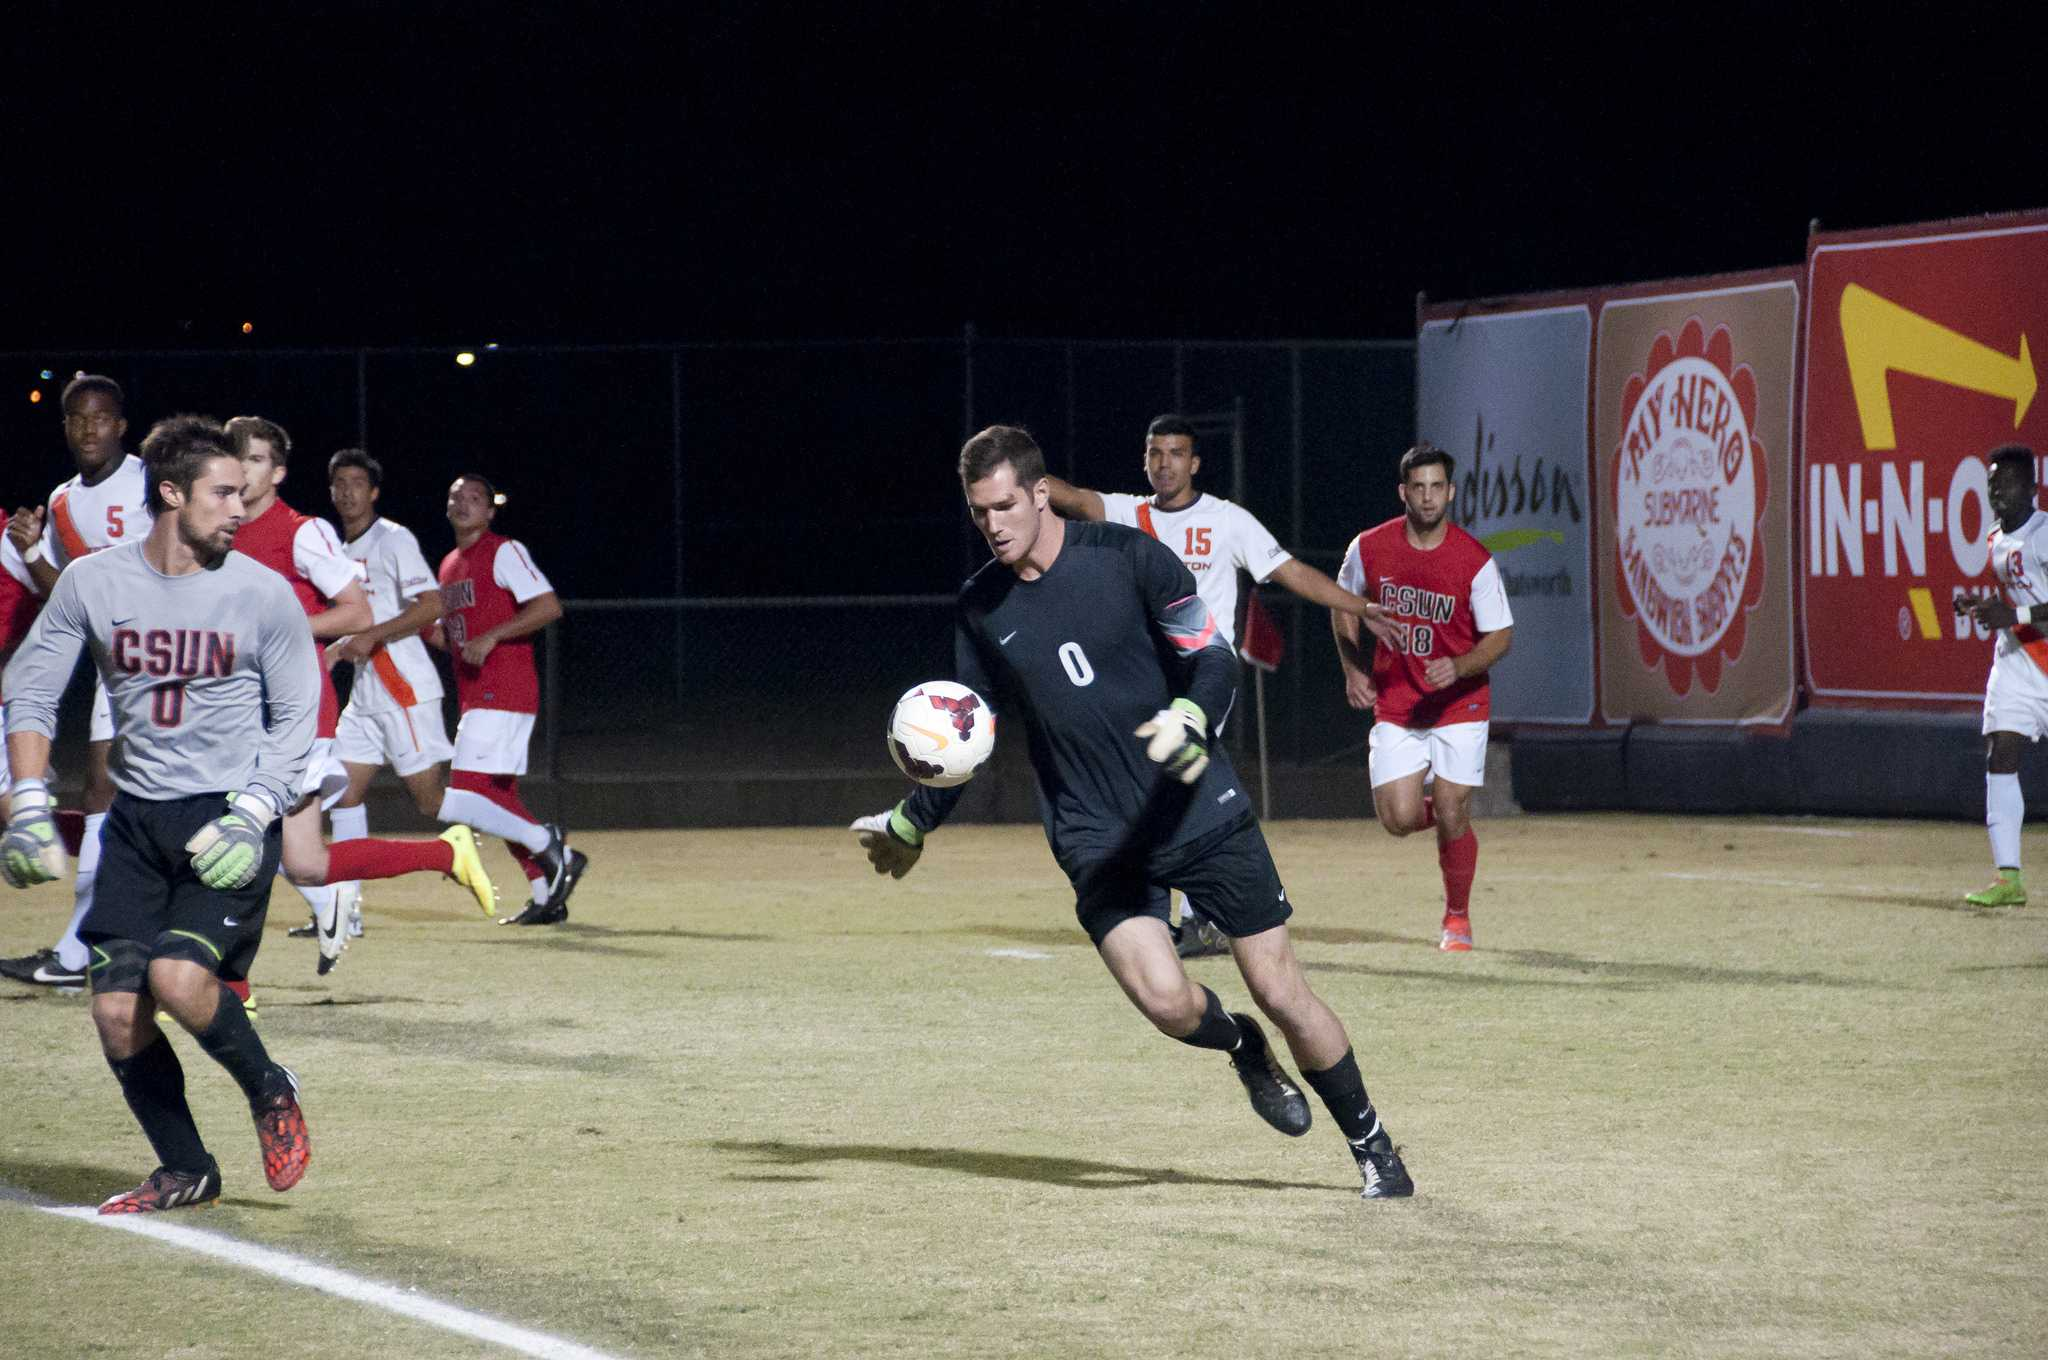 Men's soccer: Adam Hobbs wins Big West Defensive Player of the Week